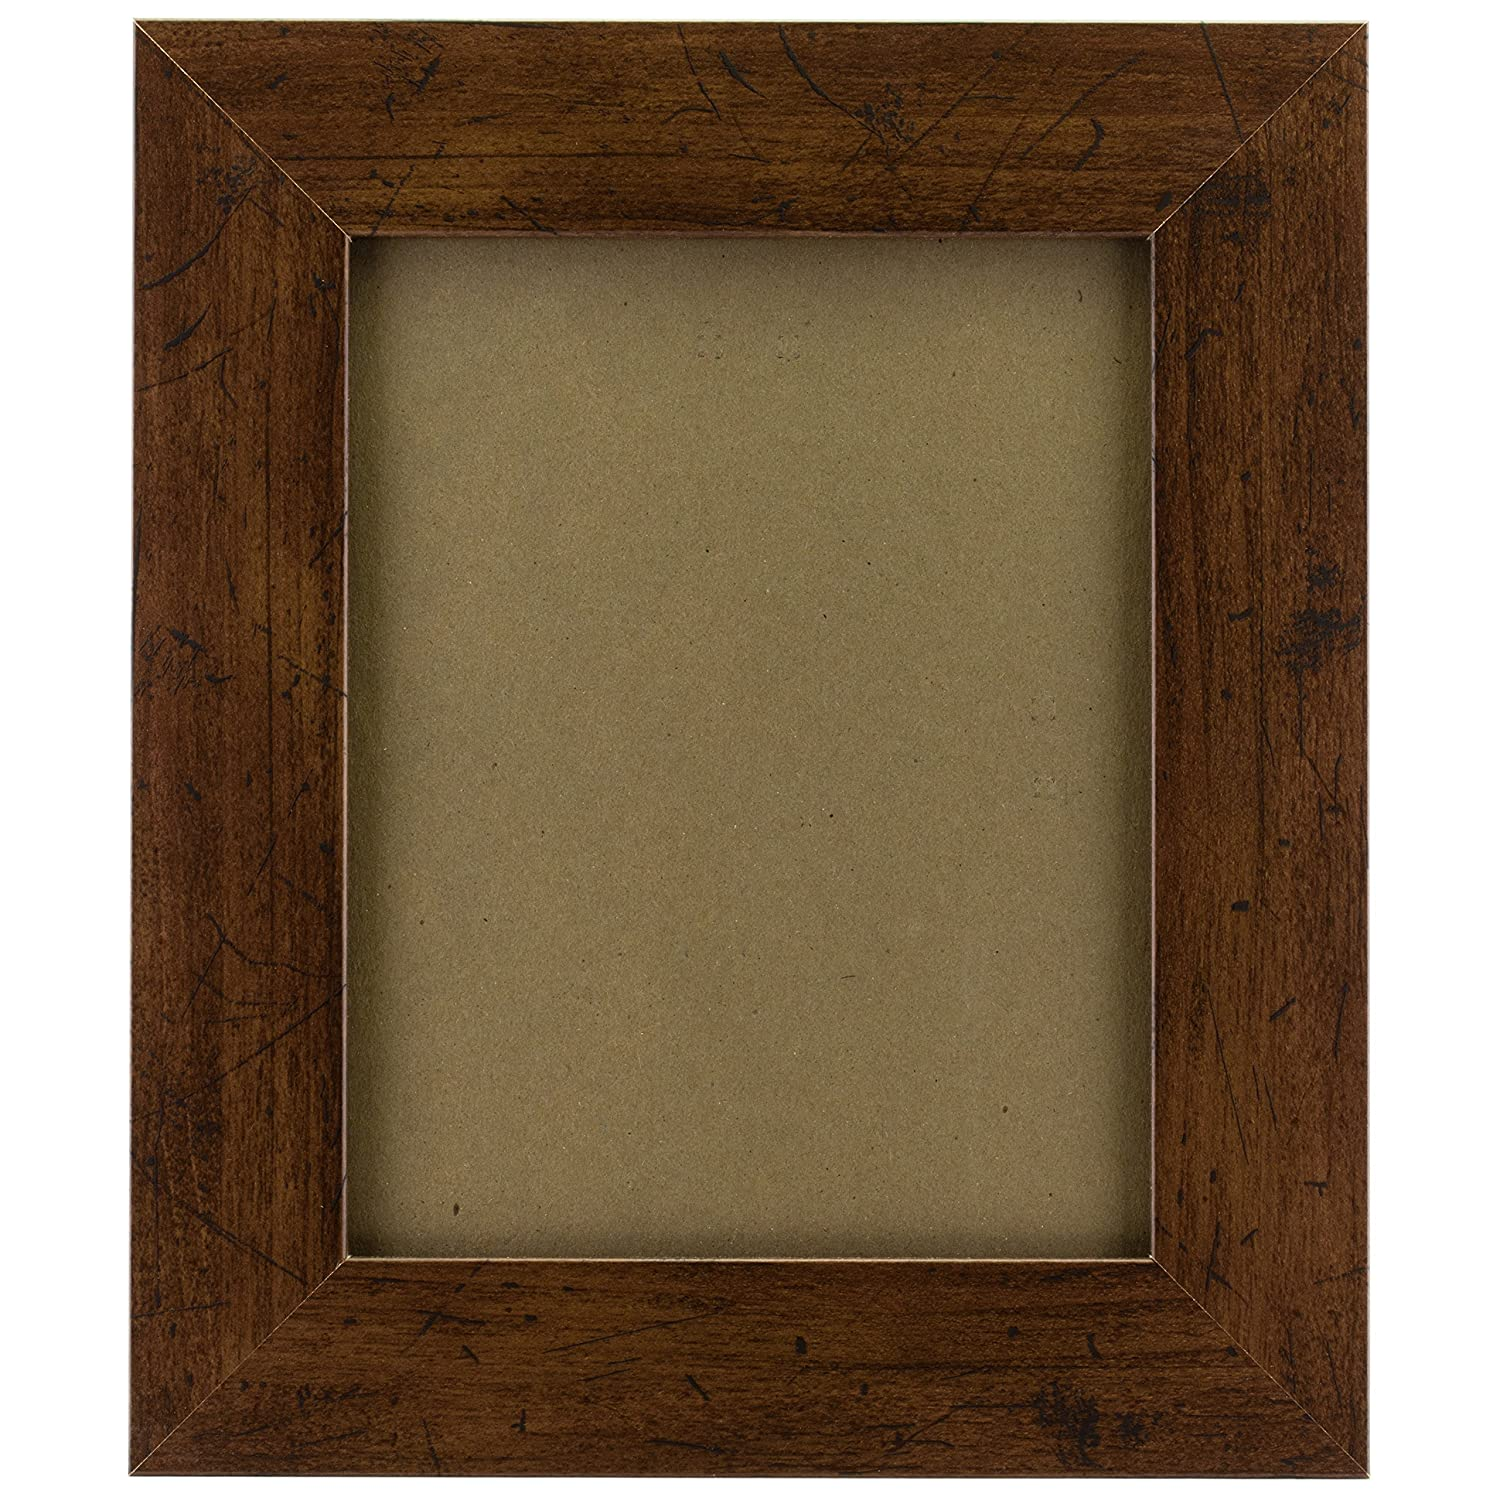 Amazon craig frames fm74dkw 18 by 24 inch rustic wall decor amazon craig frames fm74dkw 18 by 24 inch rustic wall decor frame smooth grain finish 2 inch wide dark brown single frames jeuxipadfo Image collections